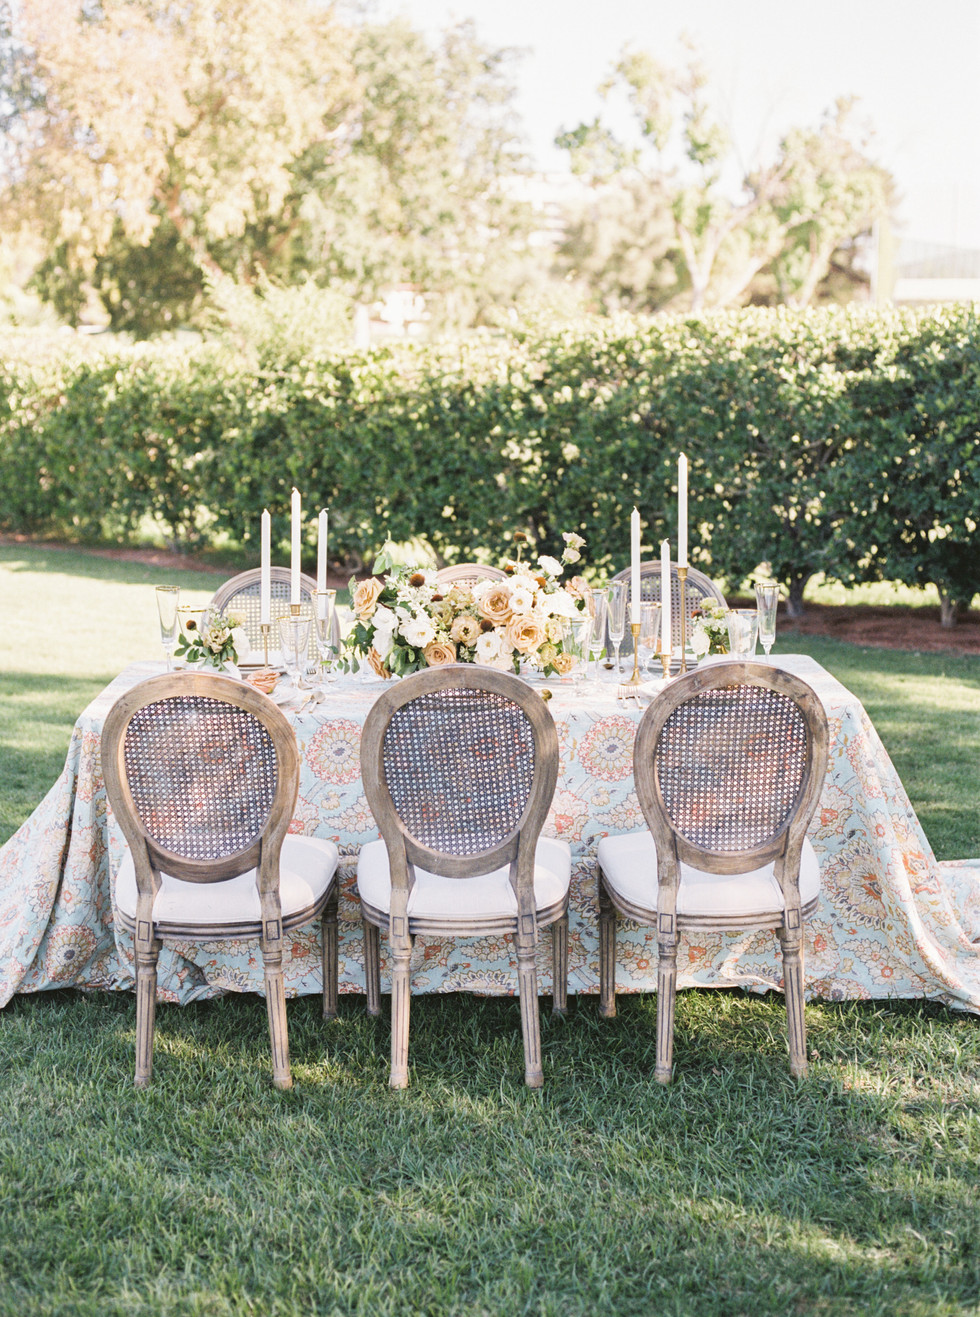 Summer wedding centerpieces in shades of yellow and ivory. Photo: Lianna Marie